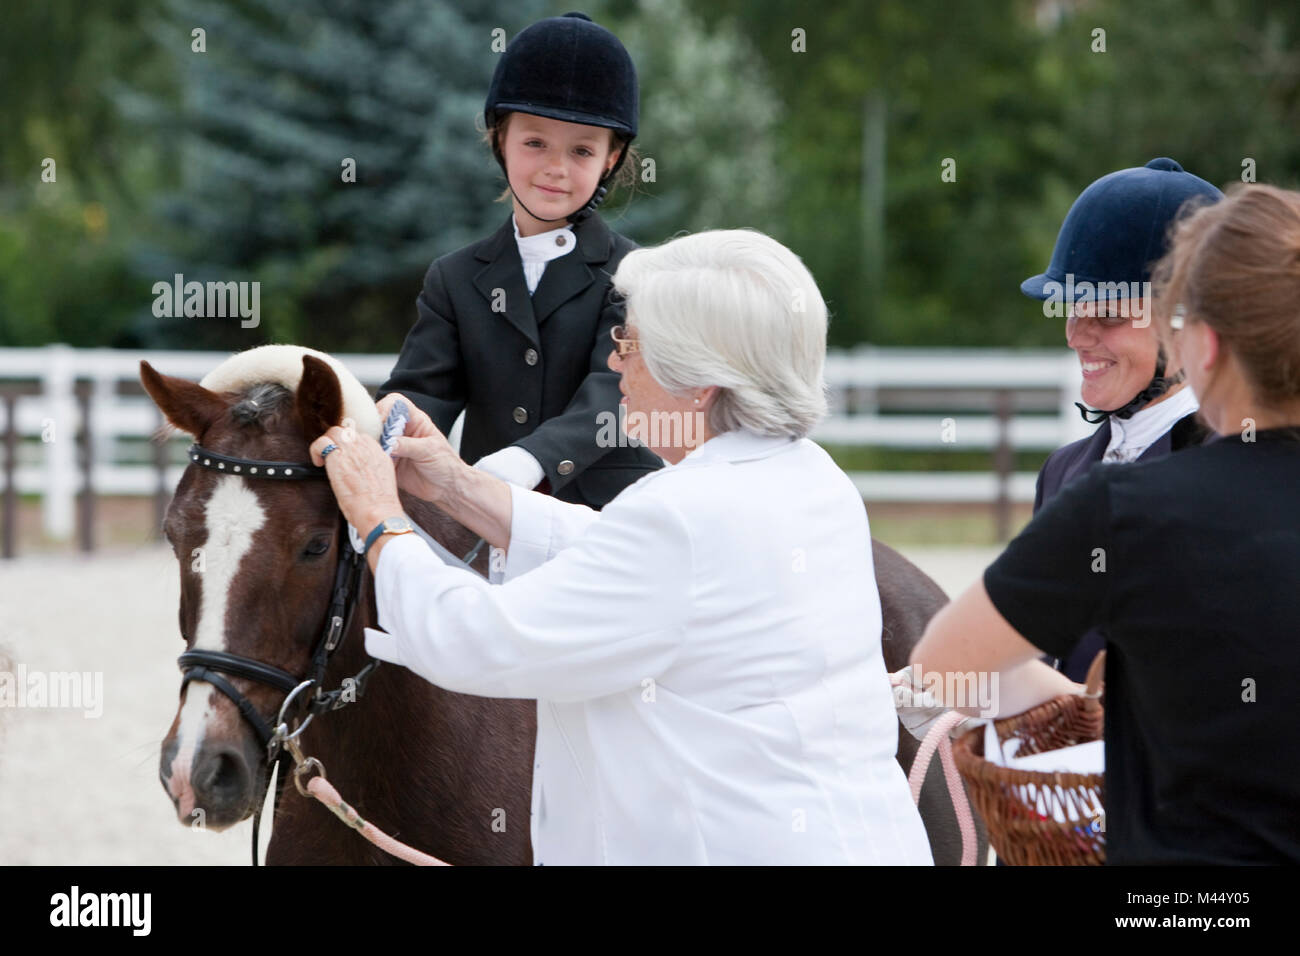 A competitor in a lead-rein competition receiving a reward. Germany - Stock Image